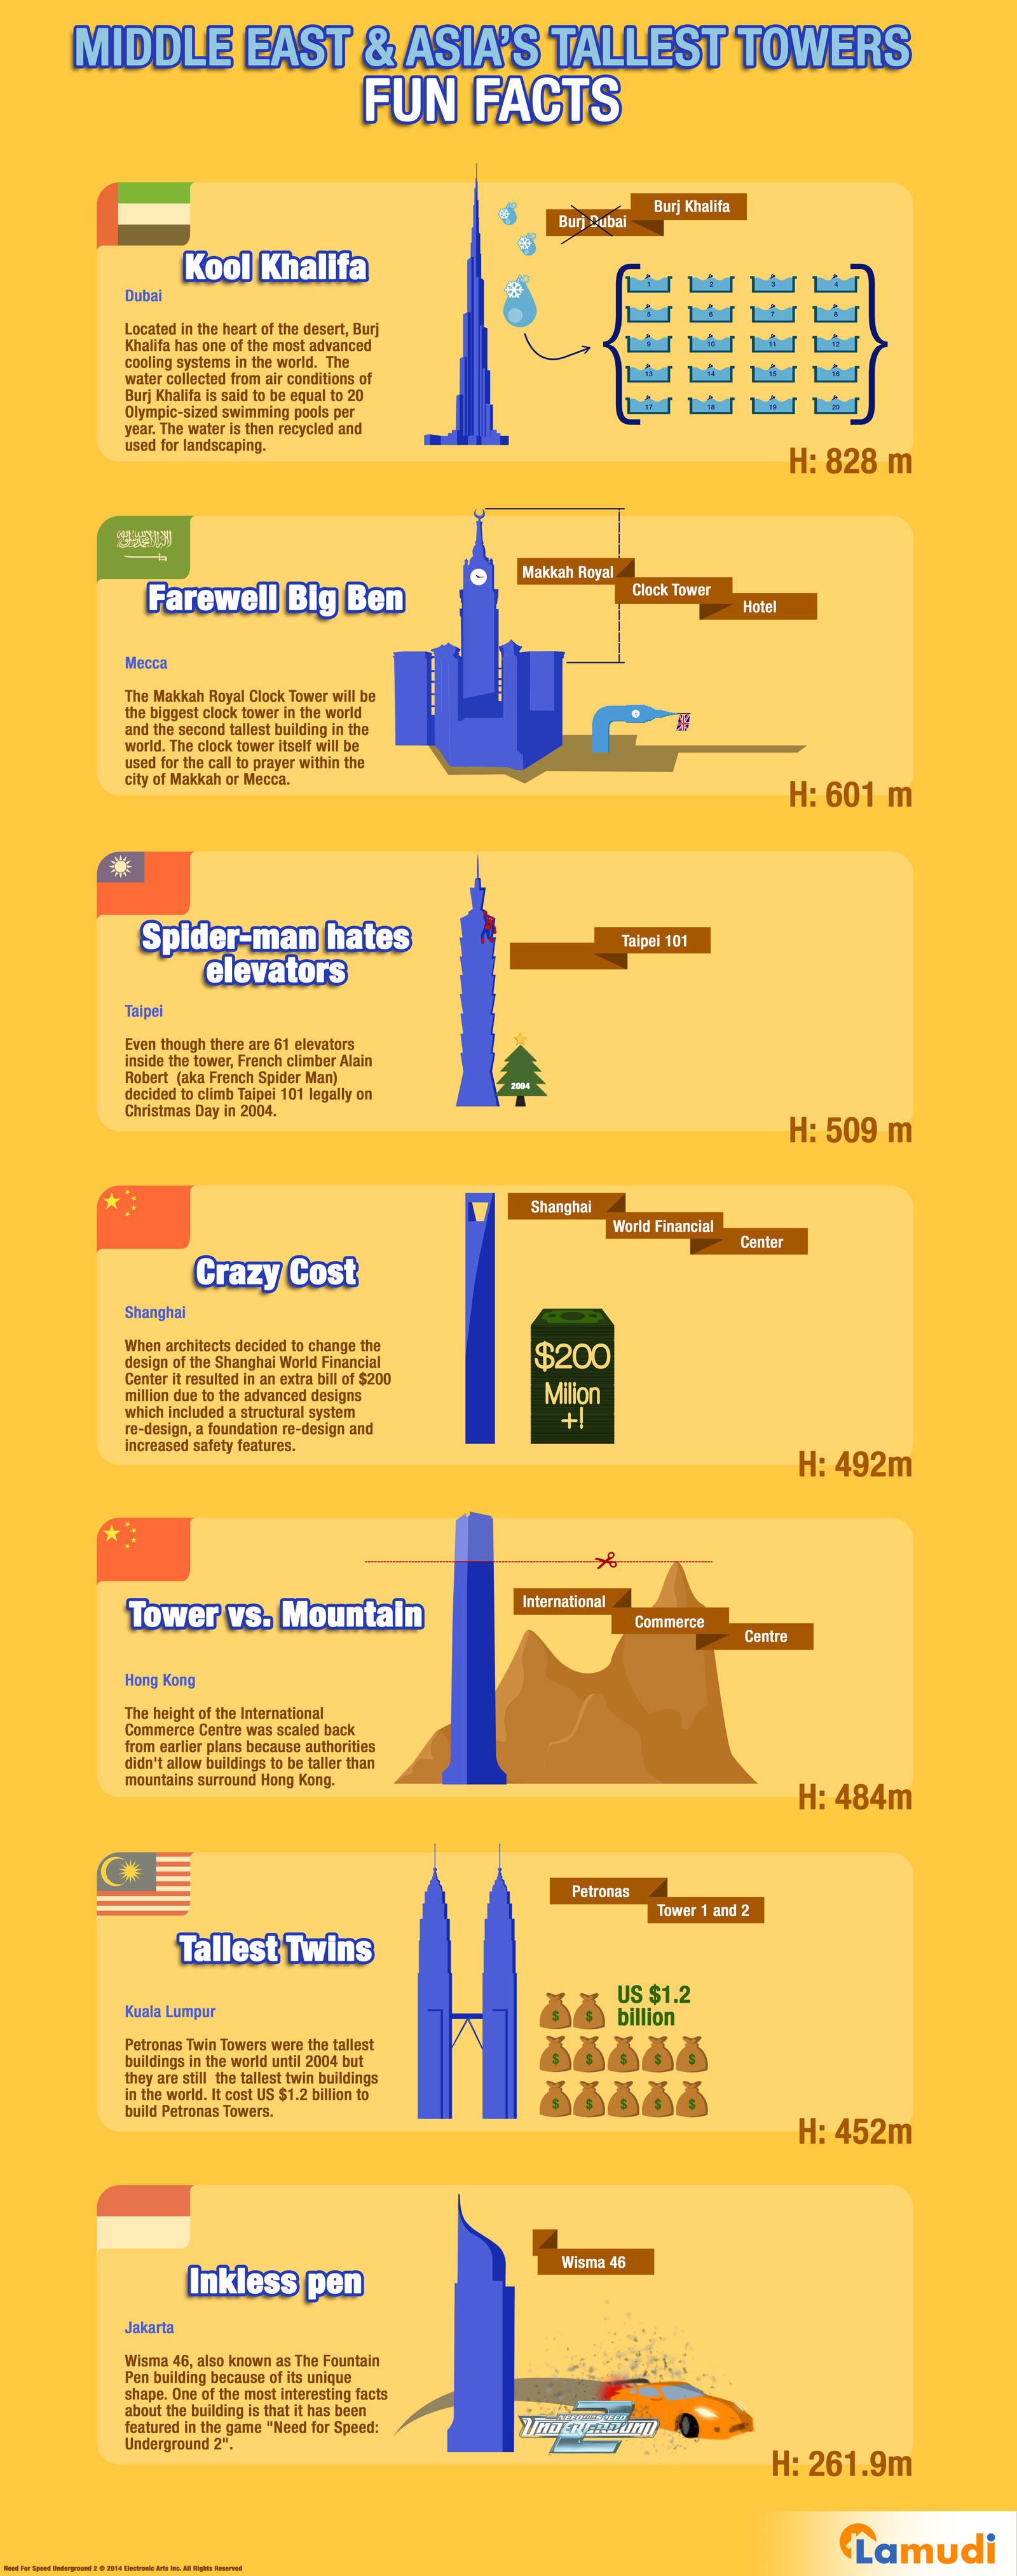 Tallest Towers in the Middle East & Asia carry some funny facts.